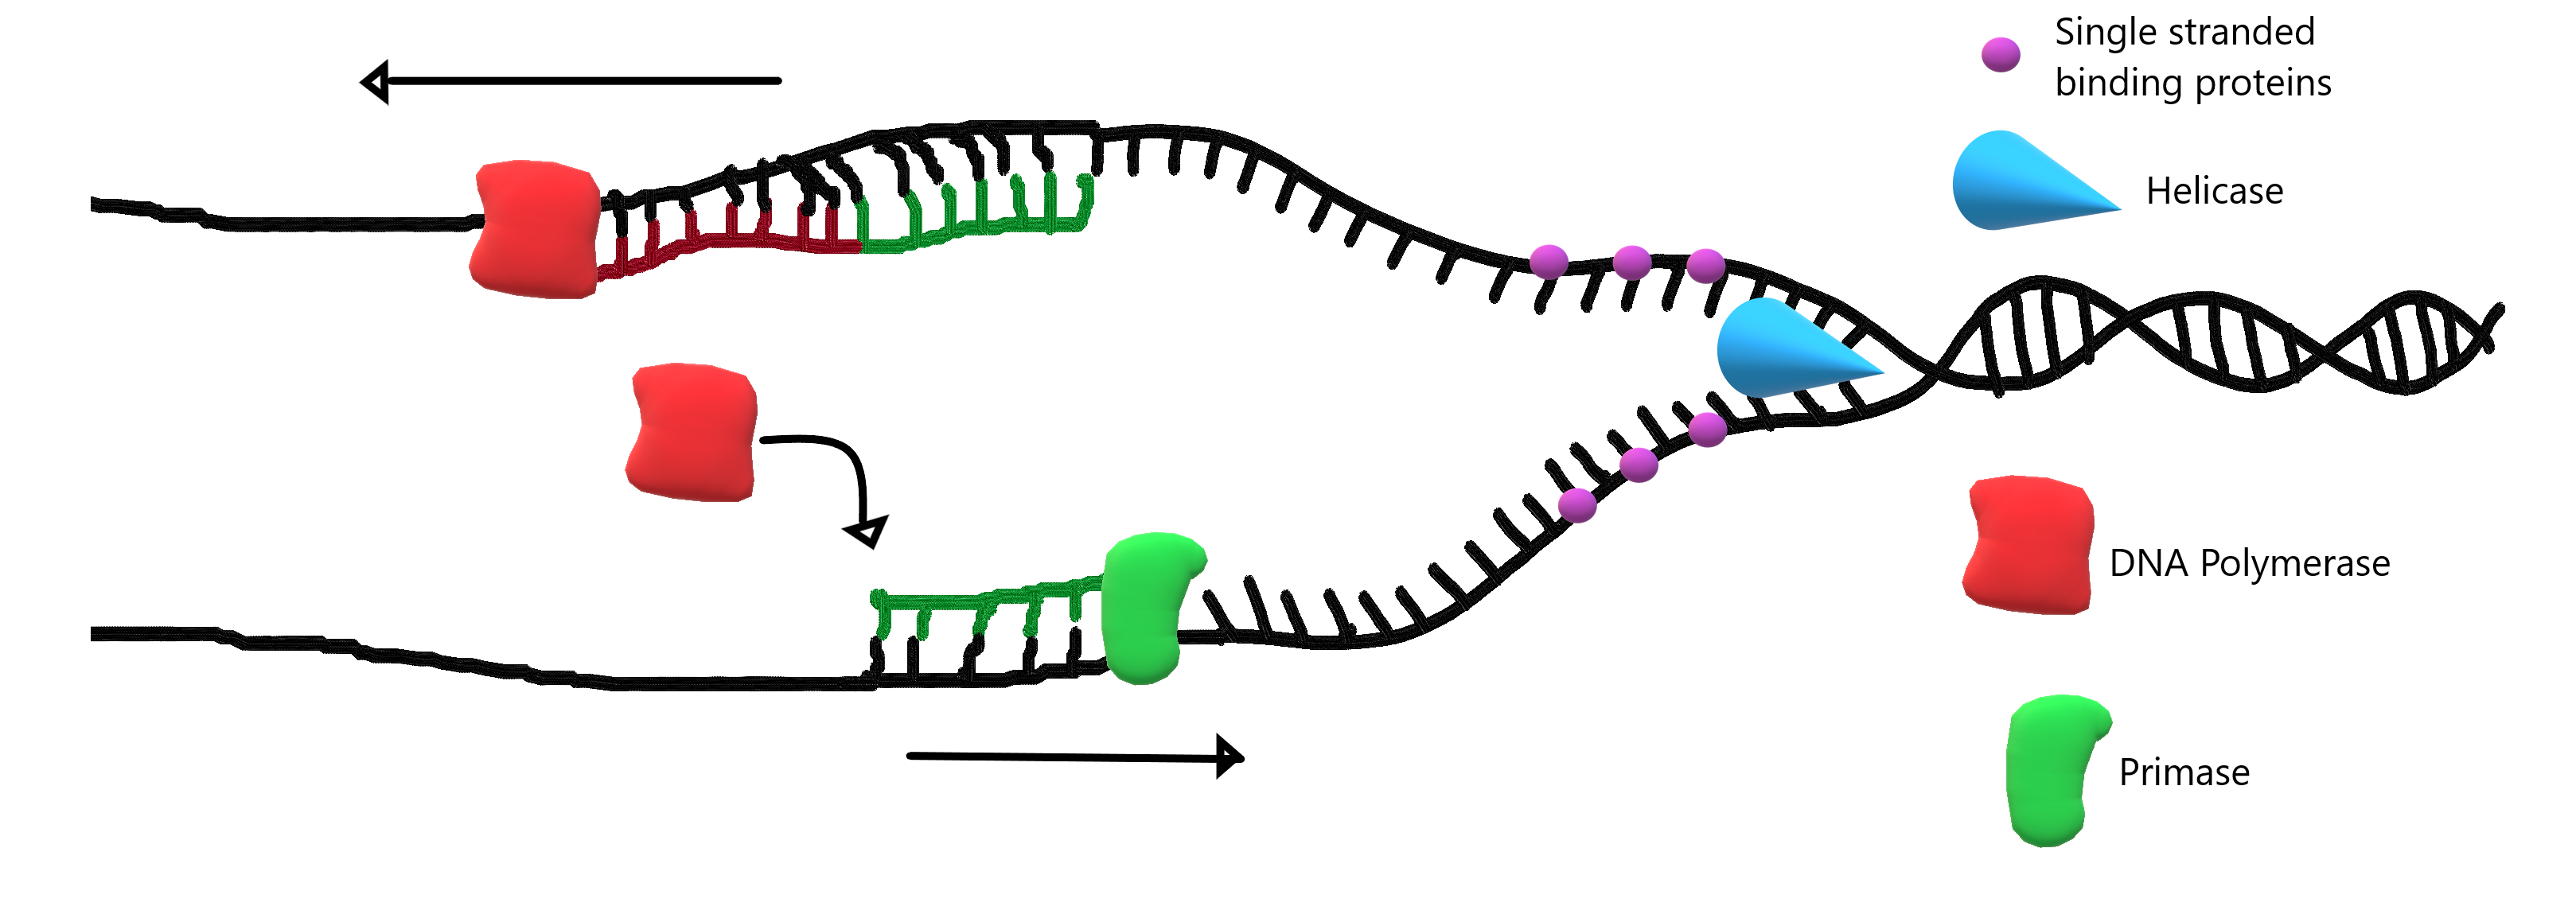 Image shows a diagram of DNA replication. Helicase is separating the two strands of DNA, single stranded binding proteins are holding open the strand of DNA. Primase is laying down primer sequences to cue DNA polymerase where to begin synthesizing the new strand of DNA